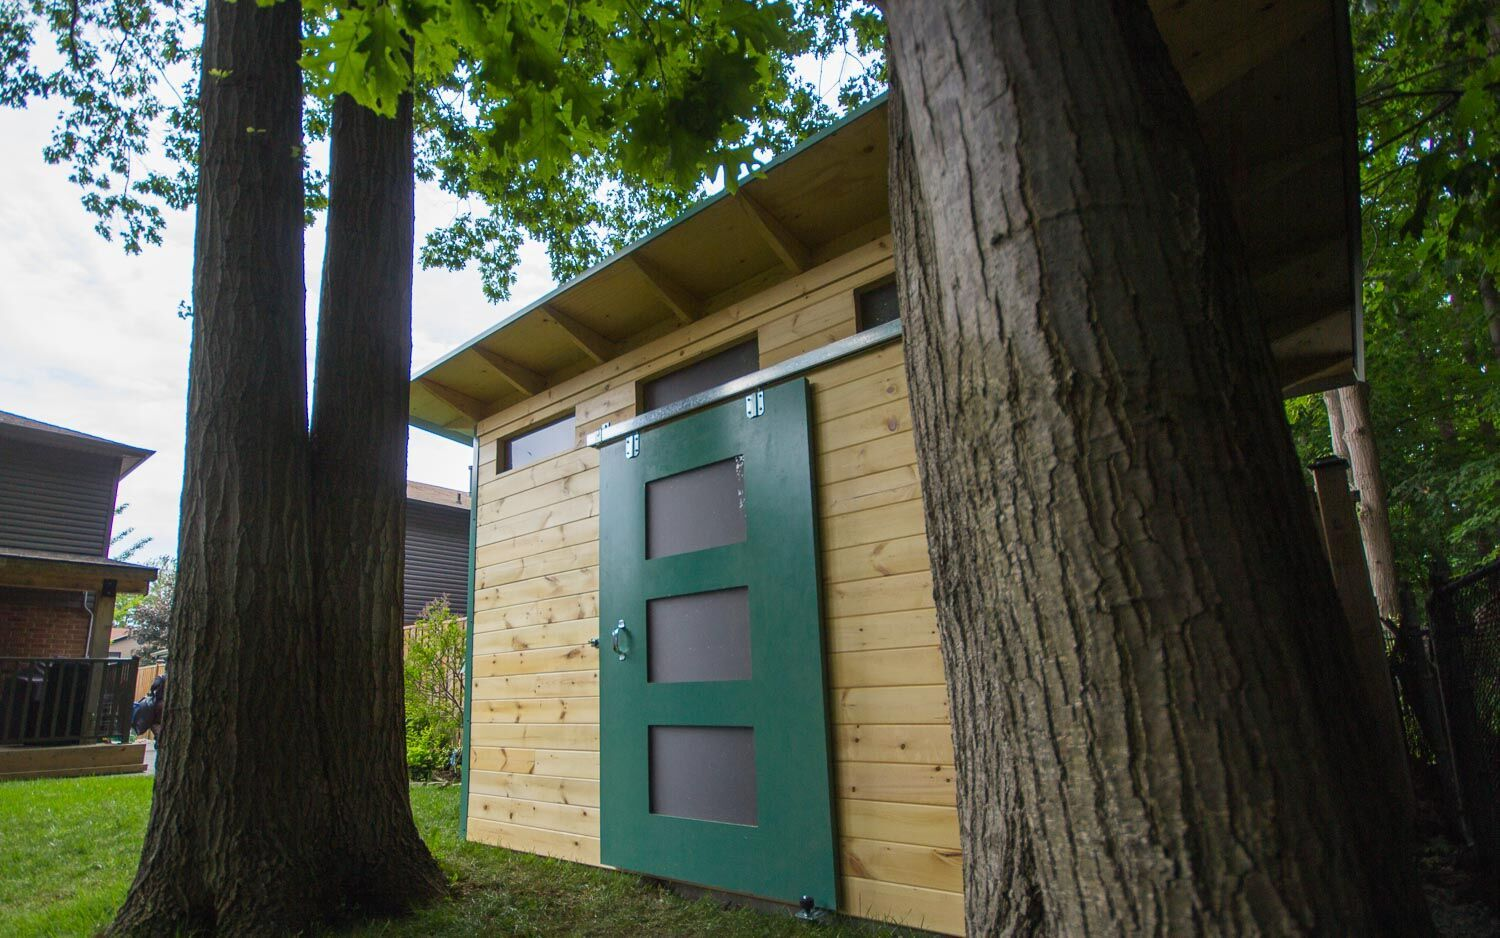 12' x 8' Advanced Garden Shed with Clear-coated Pine and Turquoise Steel